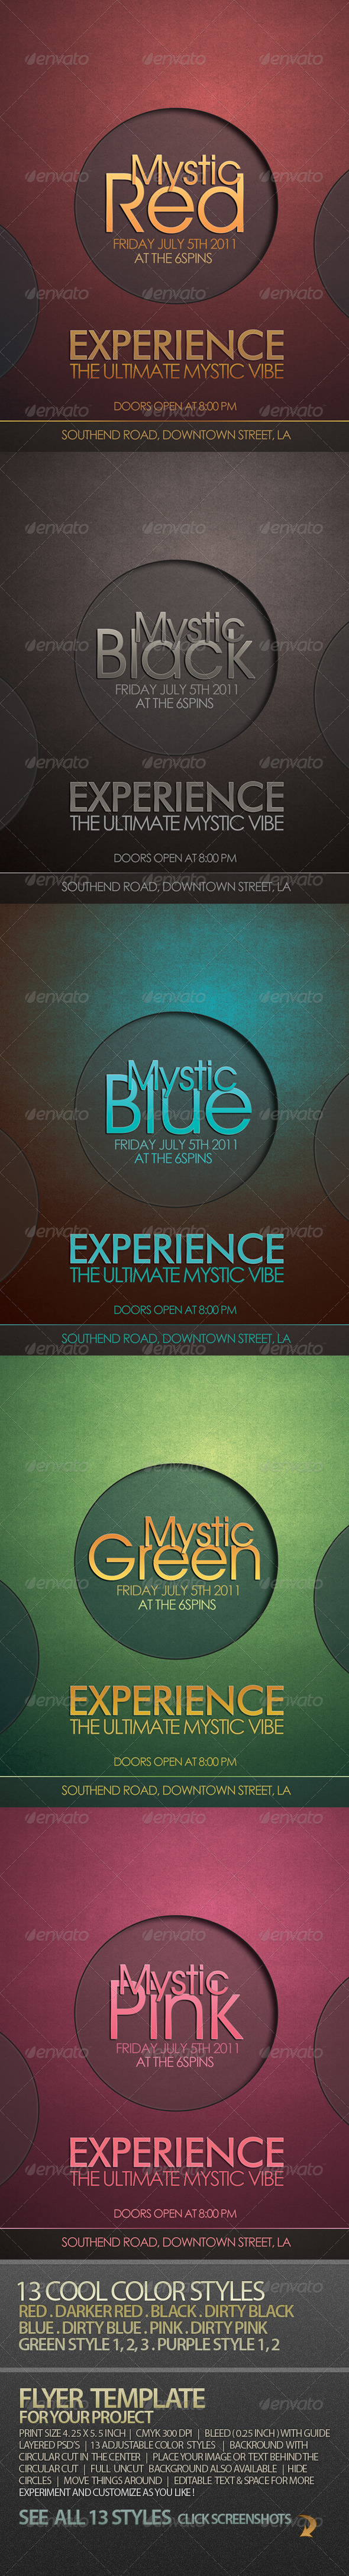 mystic cool flyer template for your project clubs parties events